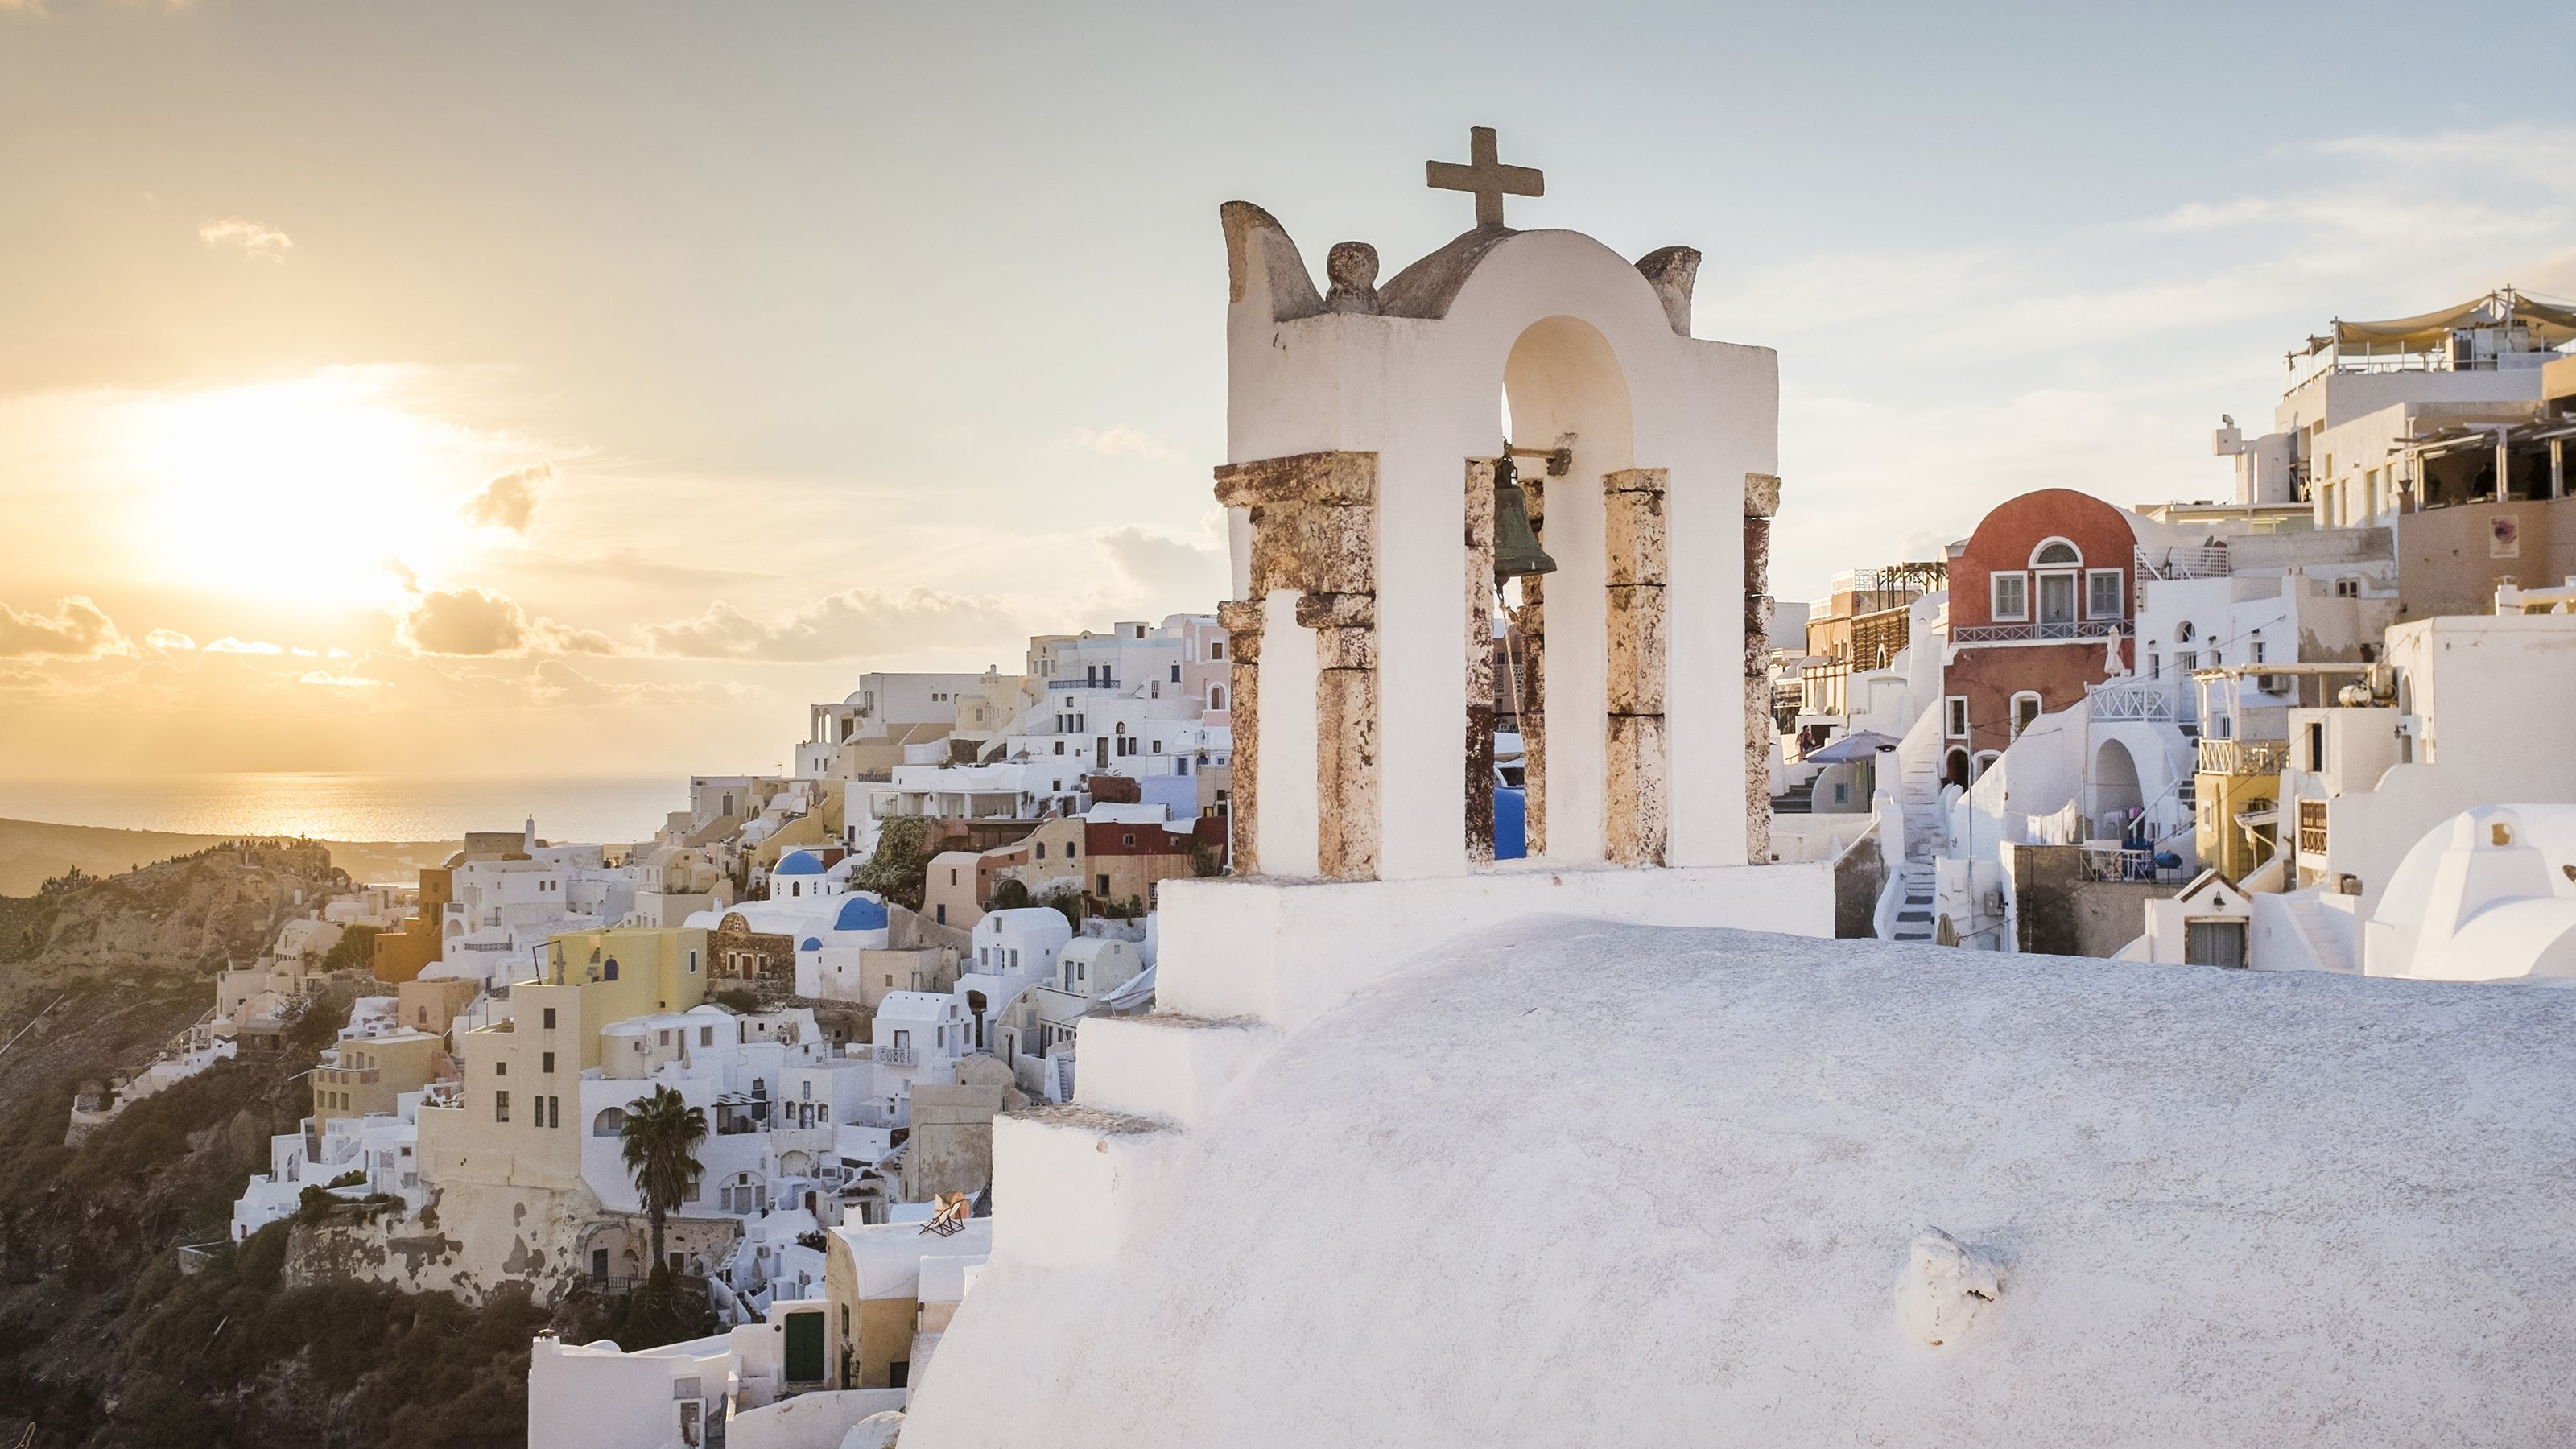 Stunning view of the city of Santorini